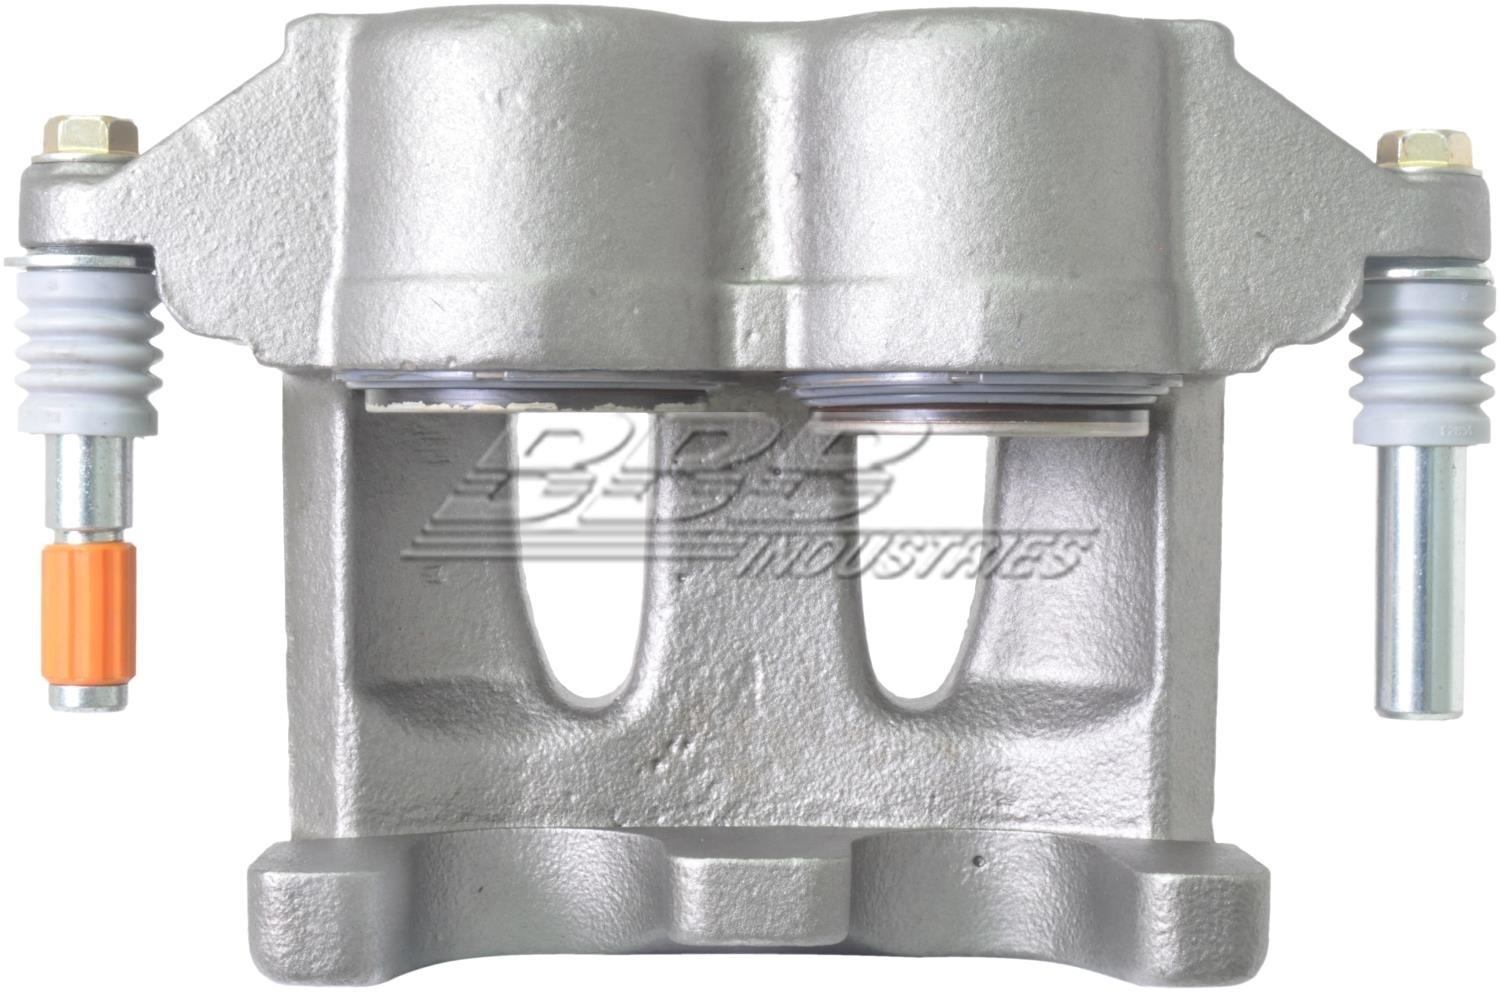 BBB INDUSTRIES - Reman Caliper w/ Installation Hardware - BBA 97-17009D